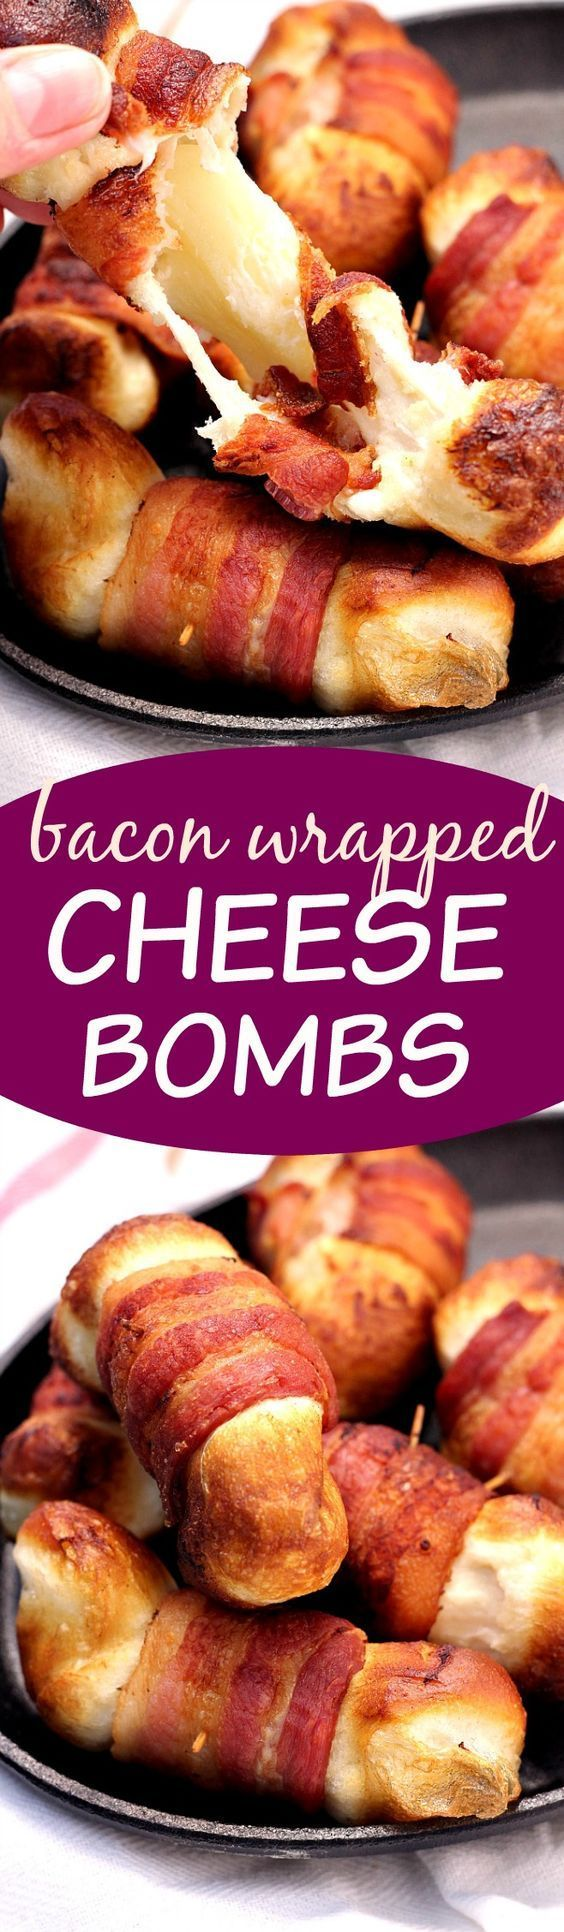 Bacon Wrapped Cheese Bombs – the appetizer that will make the party! Cheese filled biscuit bombs wrapped in bacon and fried. Do it!